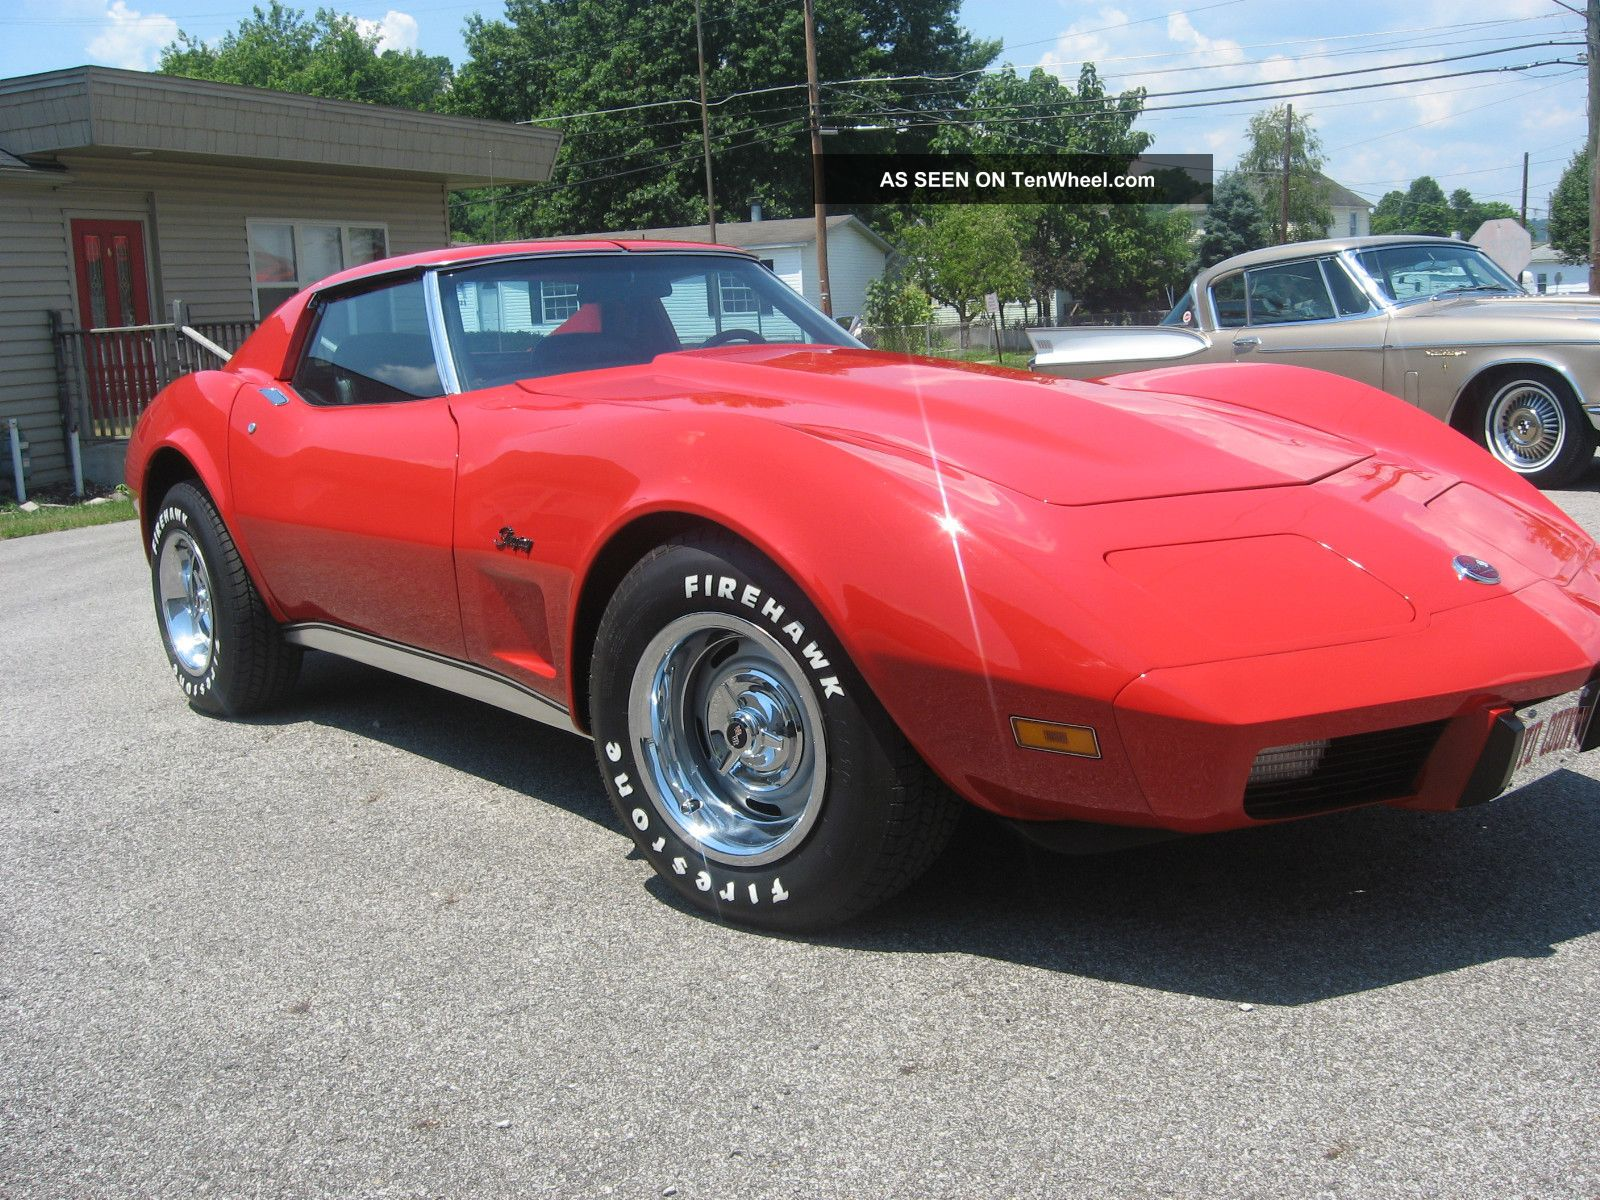 1975 chevrolet corvette stingray coupe 2 door 5 7l corvette photo. Cars Review. Best American Auto & Cars Review